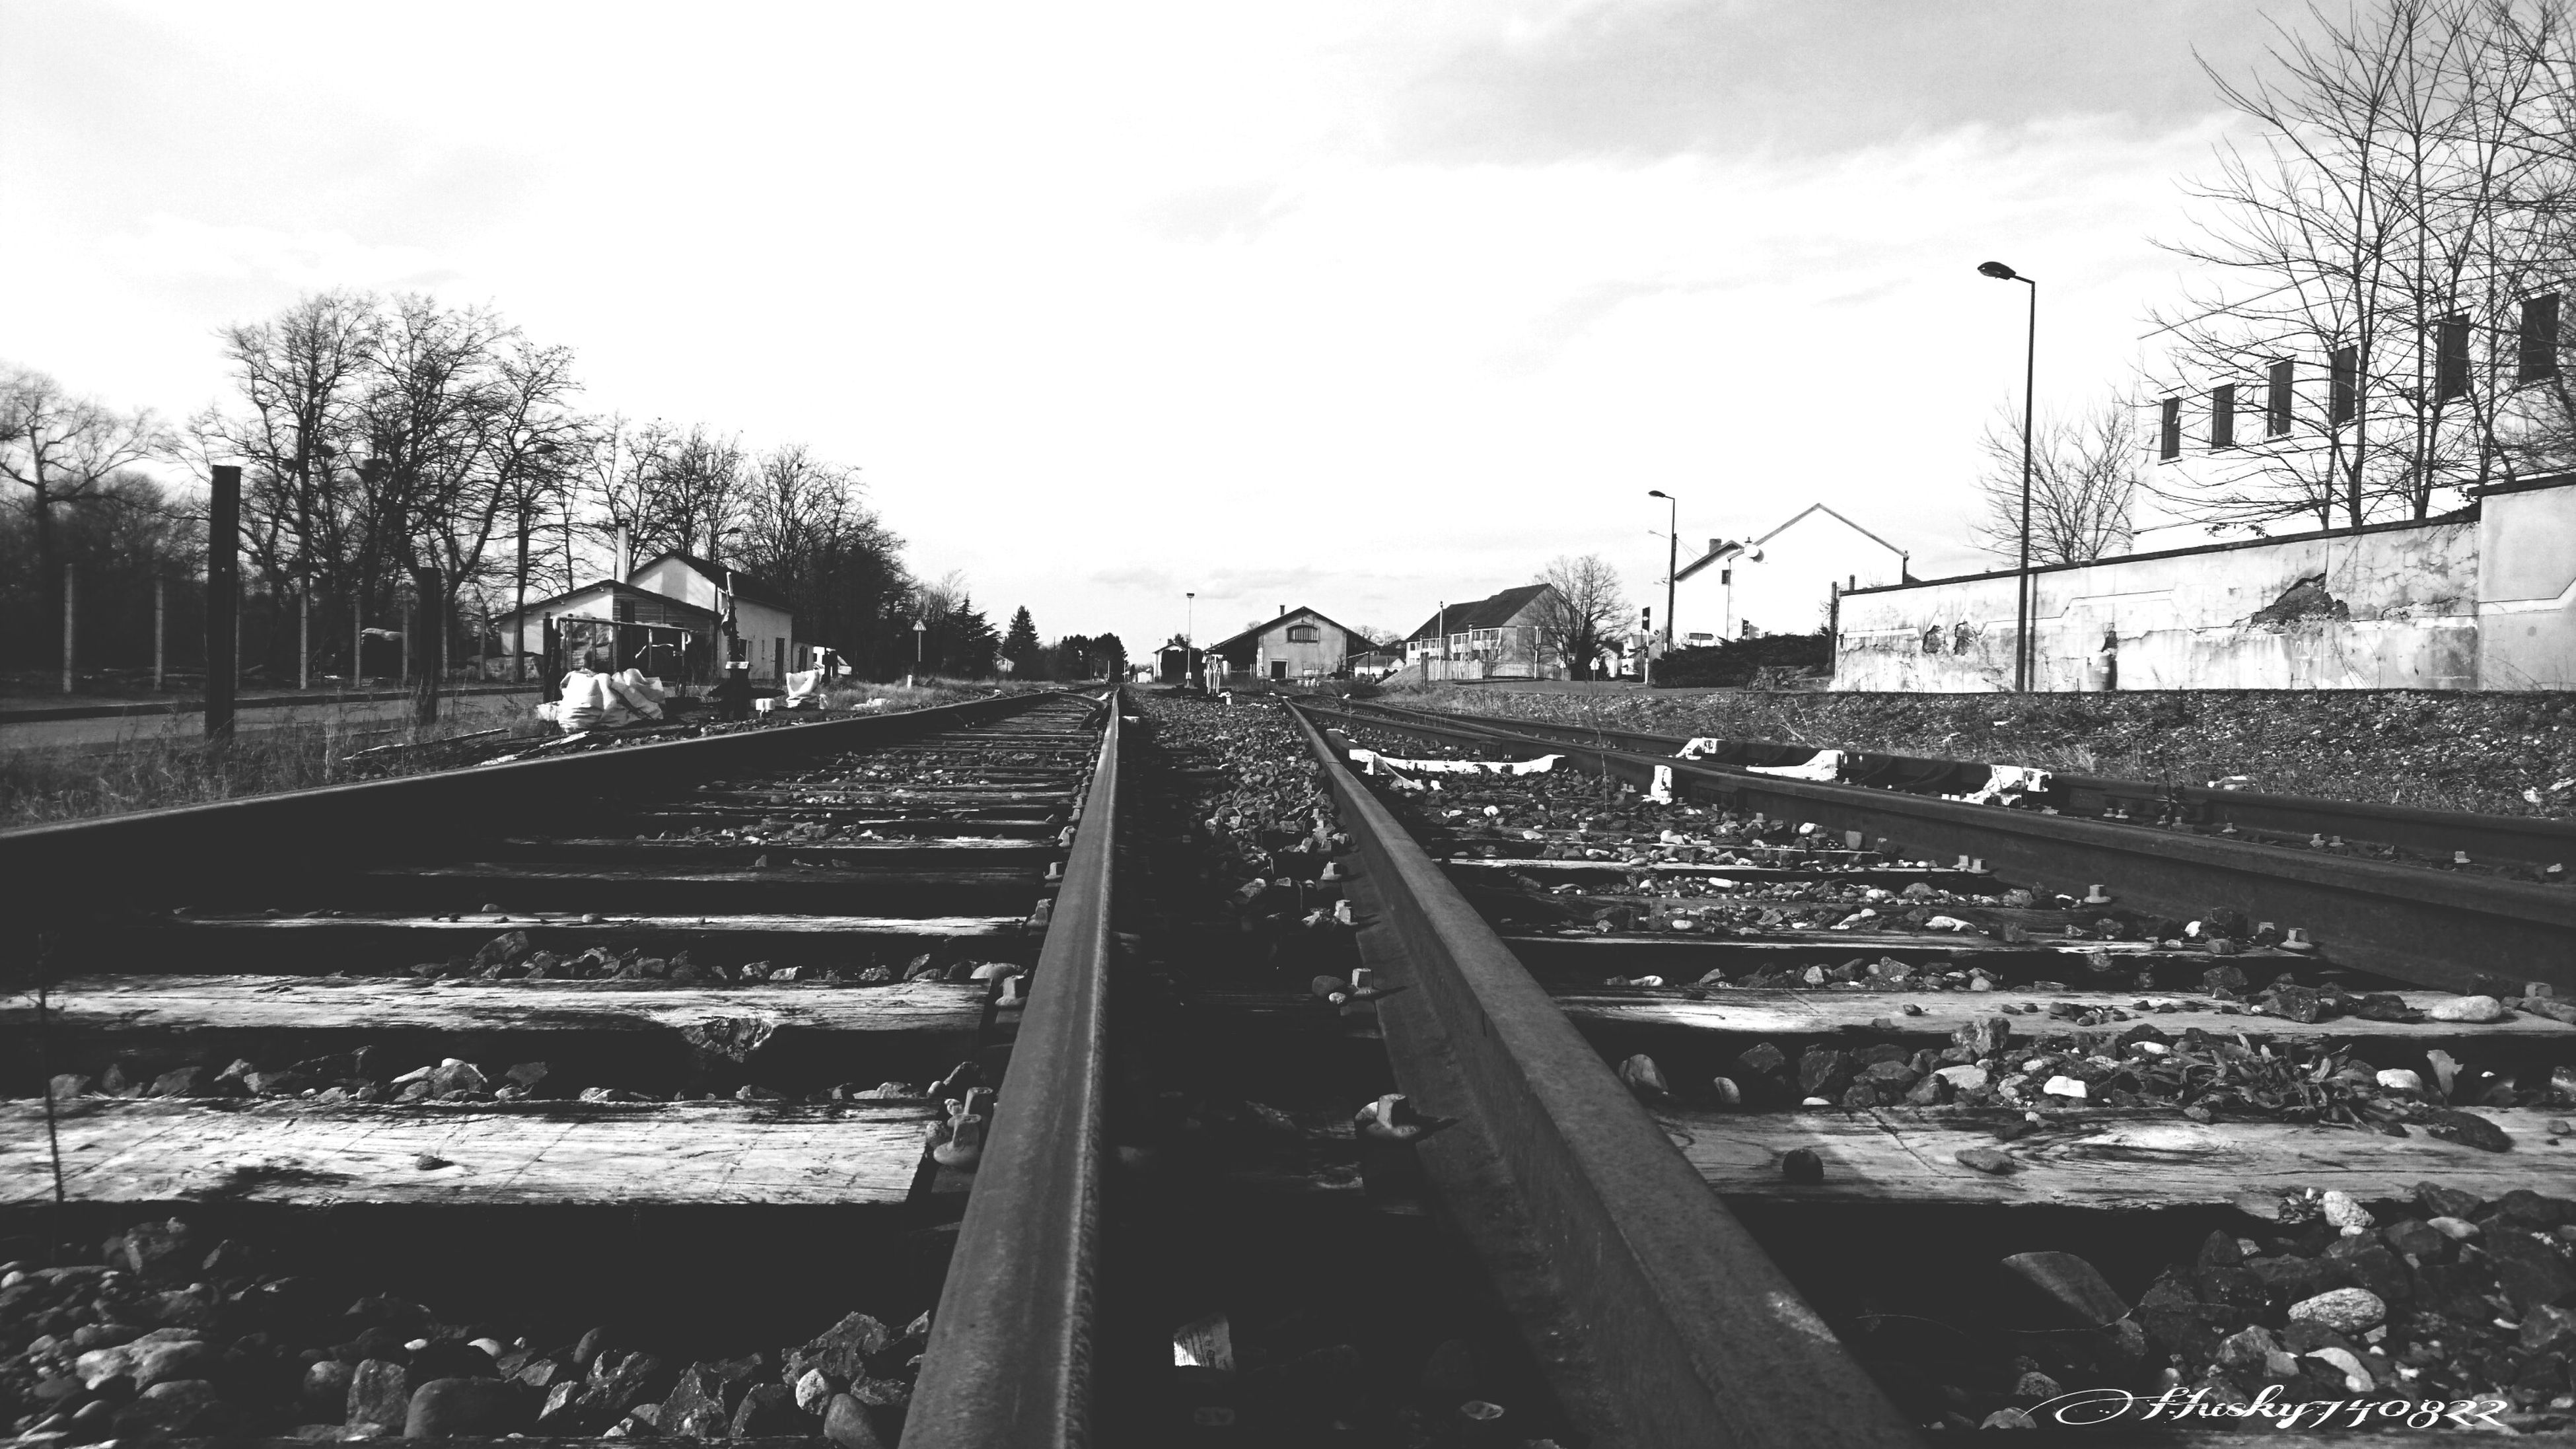 railroad track, rail transportation, transportation, sky, outdoors, day, tree, no people, architecture